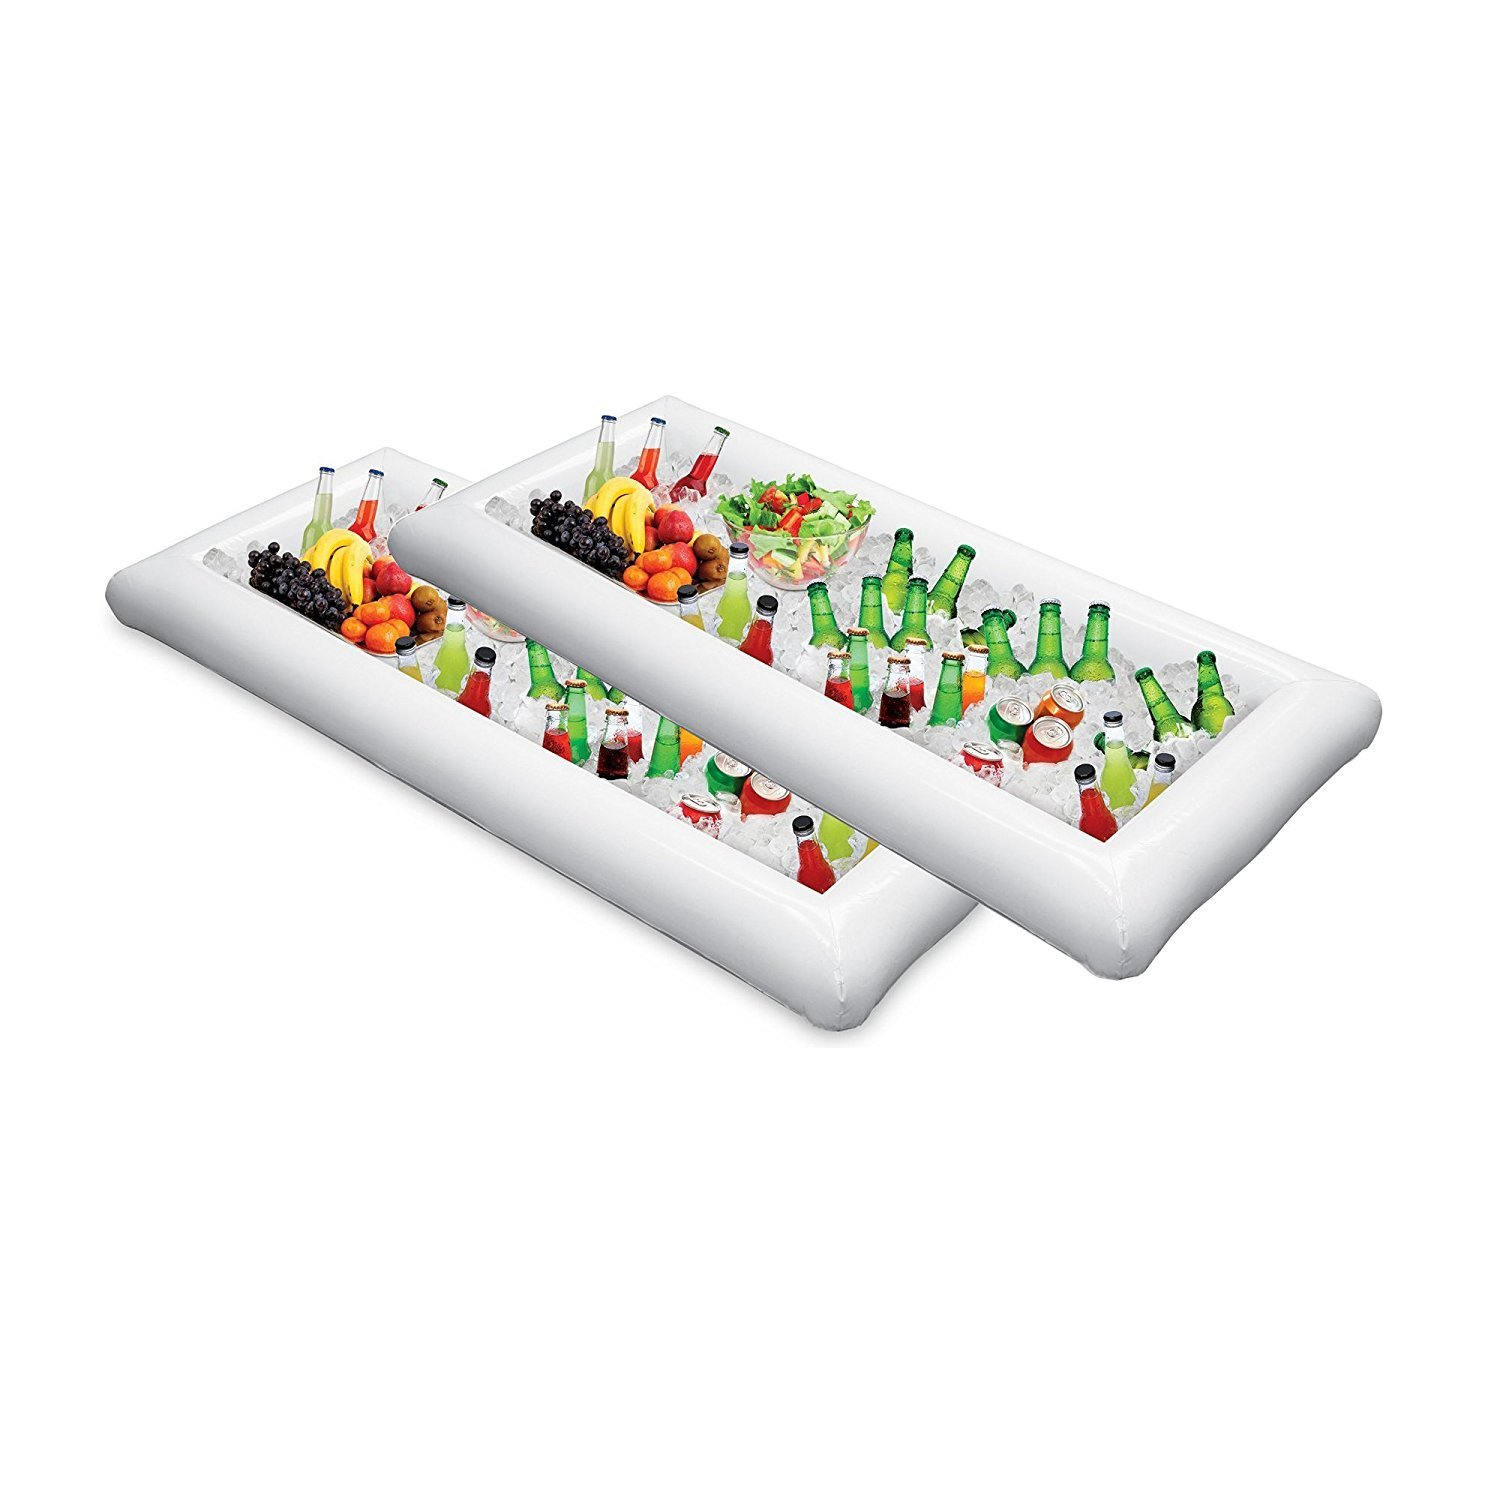 Inflatable Serving Bar Buffet Salad Food & Drink Tray,Portable Salad Bar for Football Parties, Pool Parties,BBQ,Tailgates and More Amian Shop Salad Bar 58